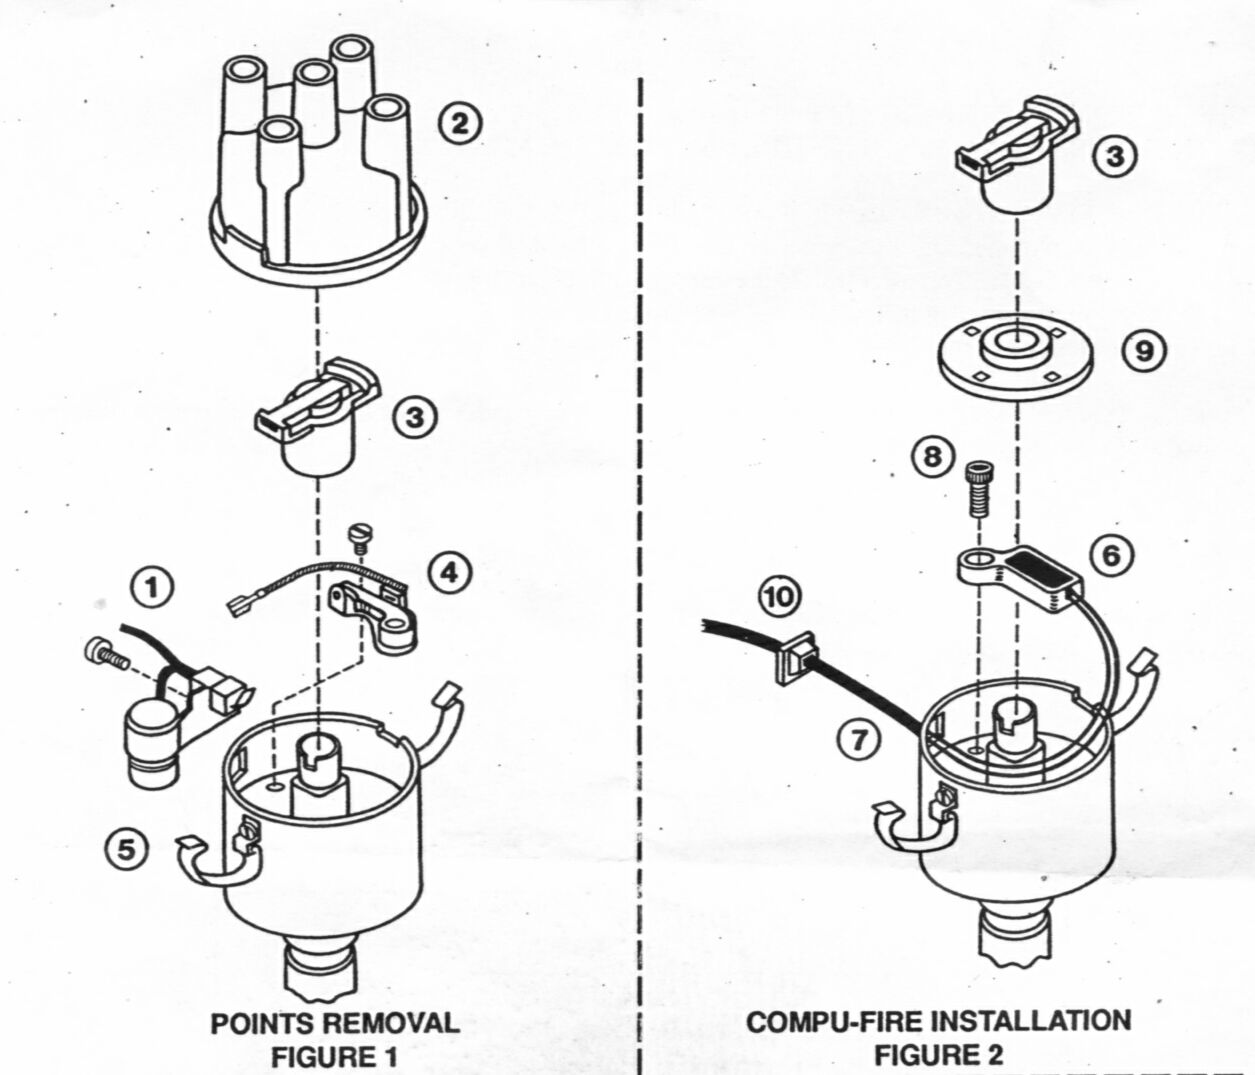 hight resolution of compufire electronic ignition vw beetle ignition coil wiring diagram moreover vw beetle wiring